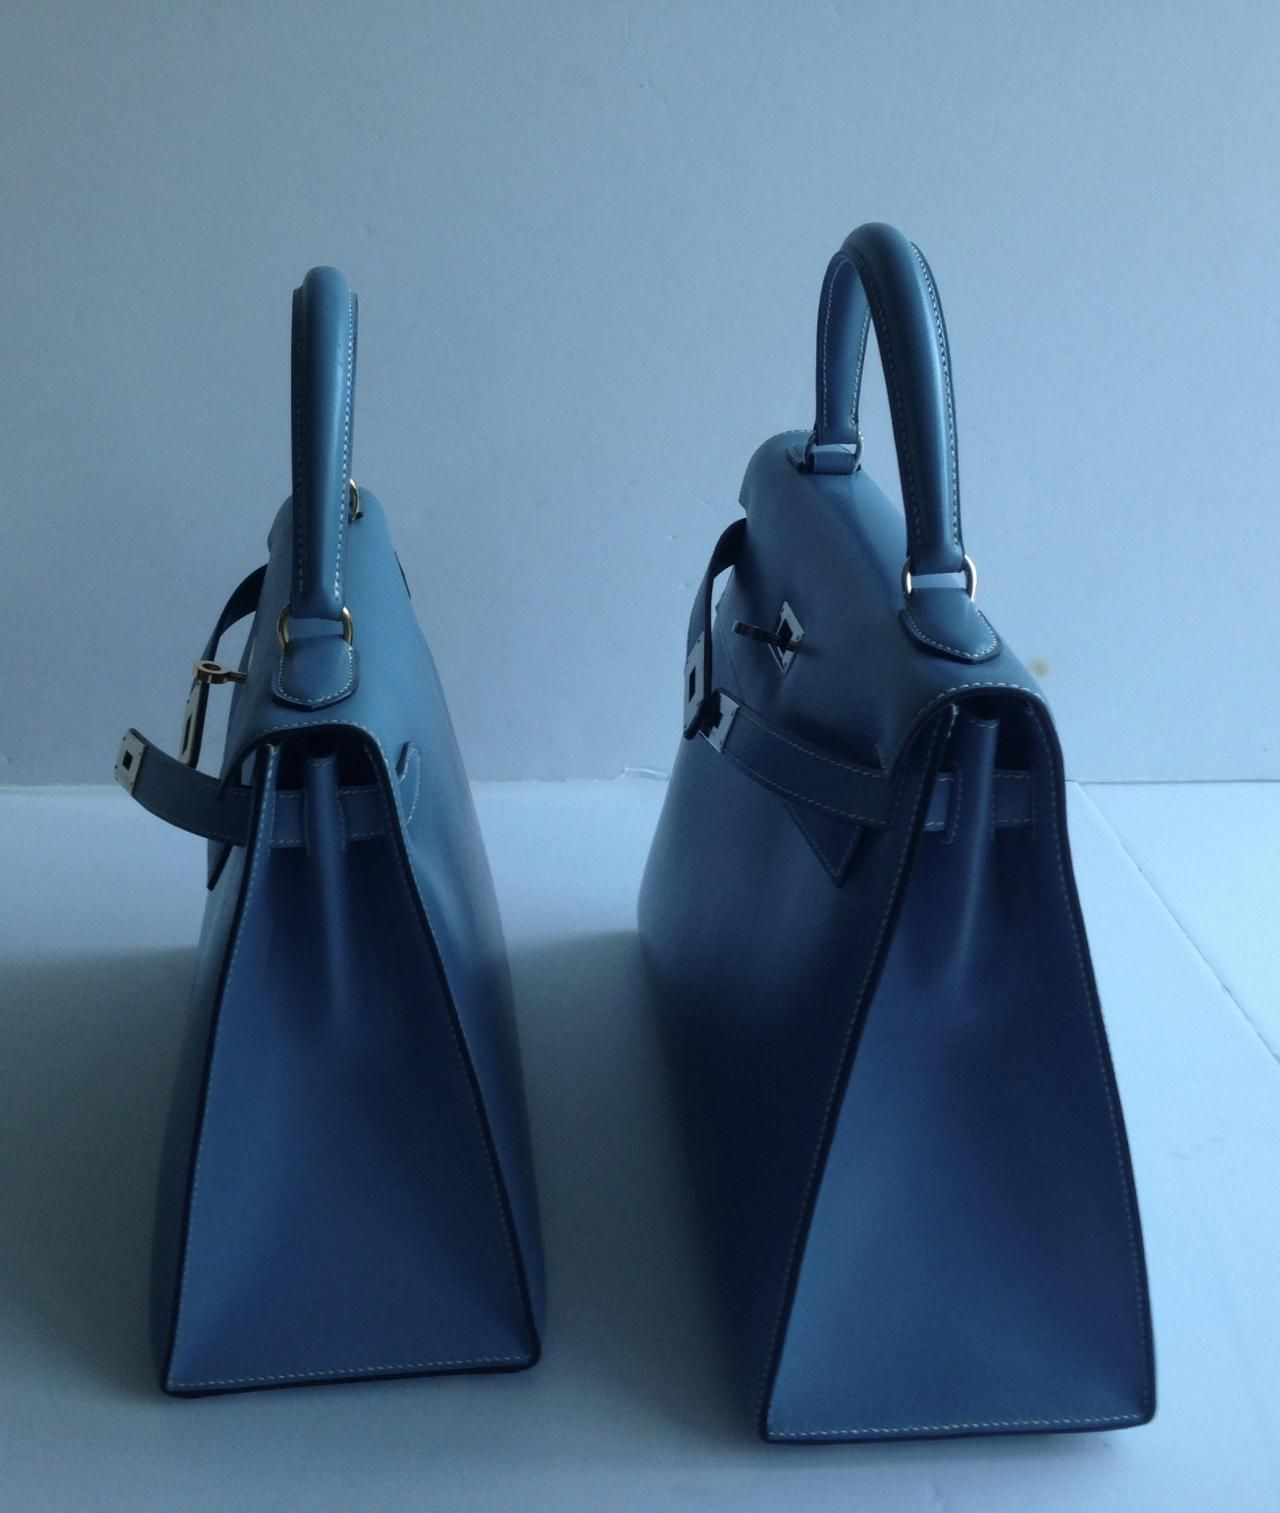 Authentic HERMES Kelly 28 cm Blue Jean Box Calf Gold Hardware Rare - Images hosted at BiggerBids.com